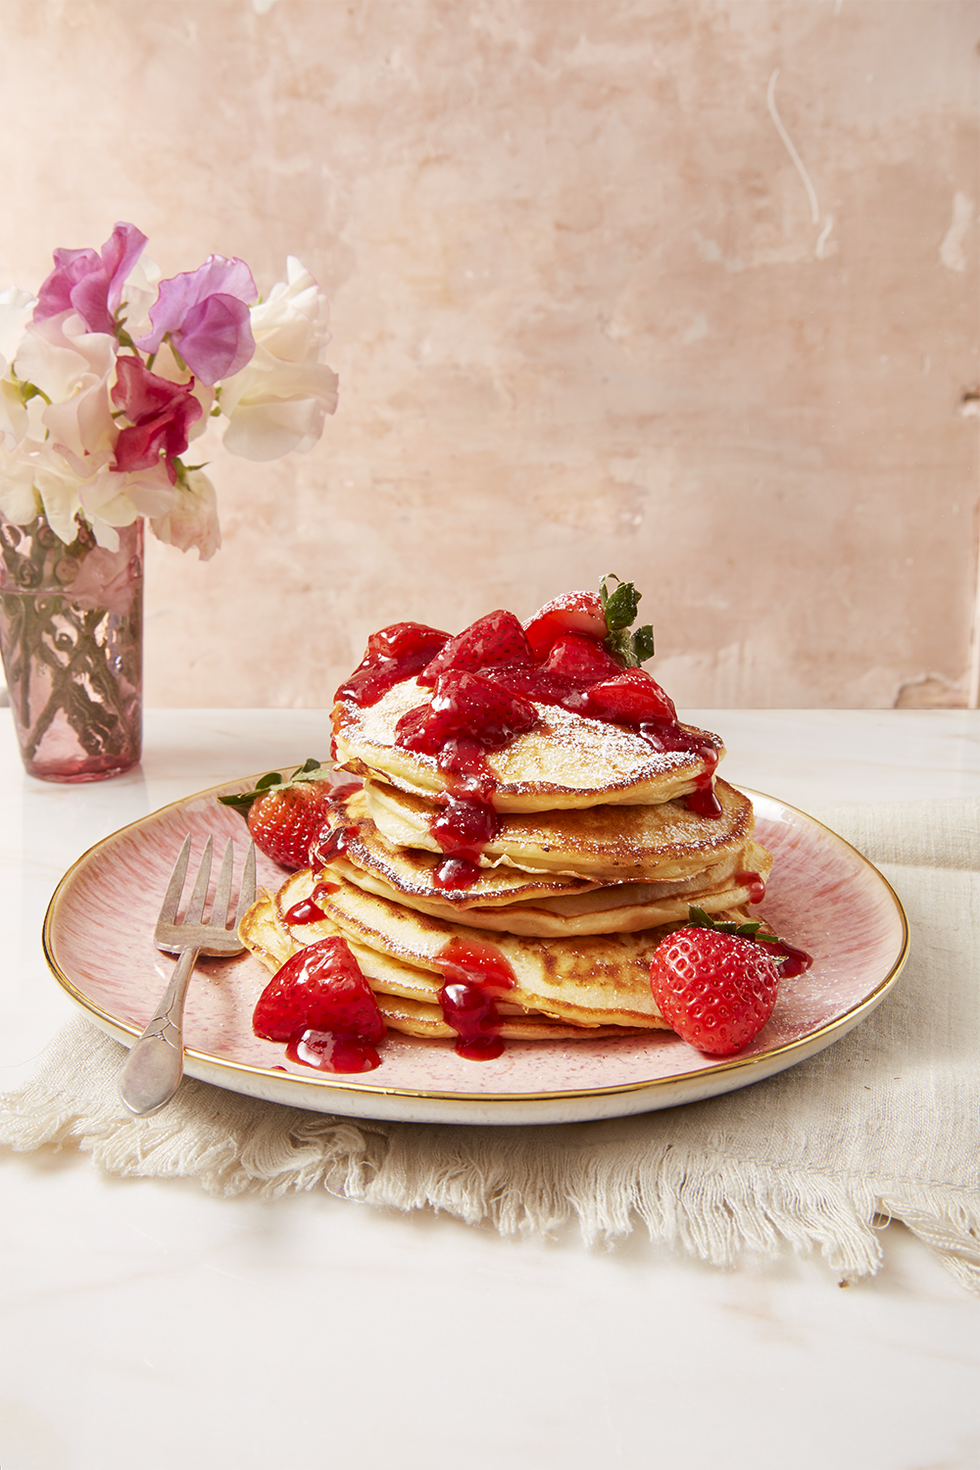 21 Delicious Valentine's Day Breakfast Ideas for the Most Romantic Morning Ever